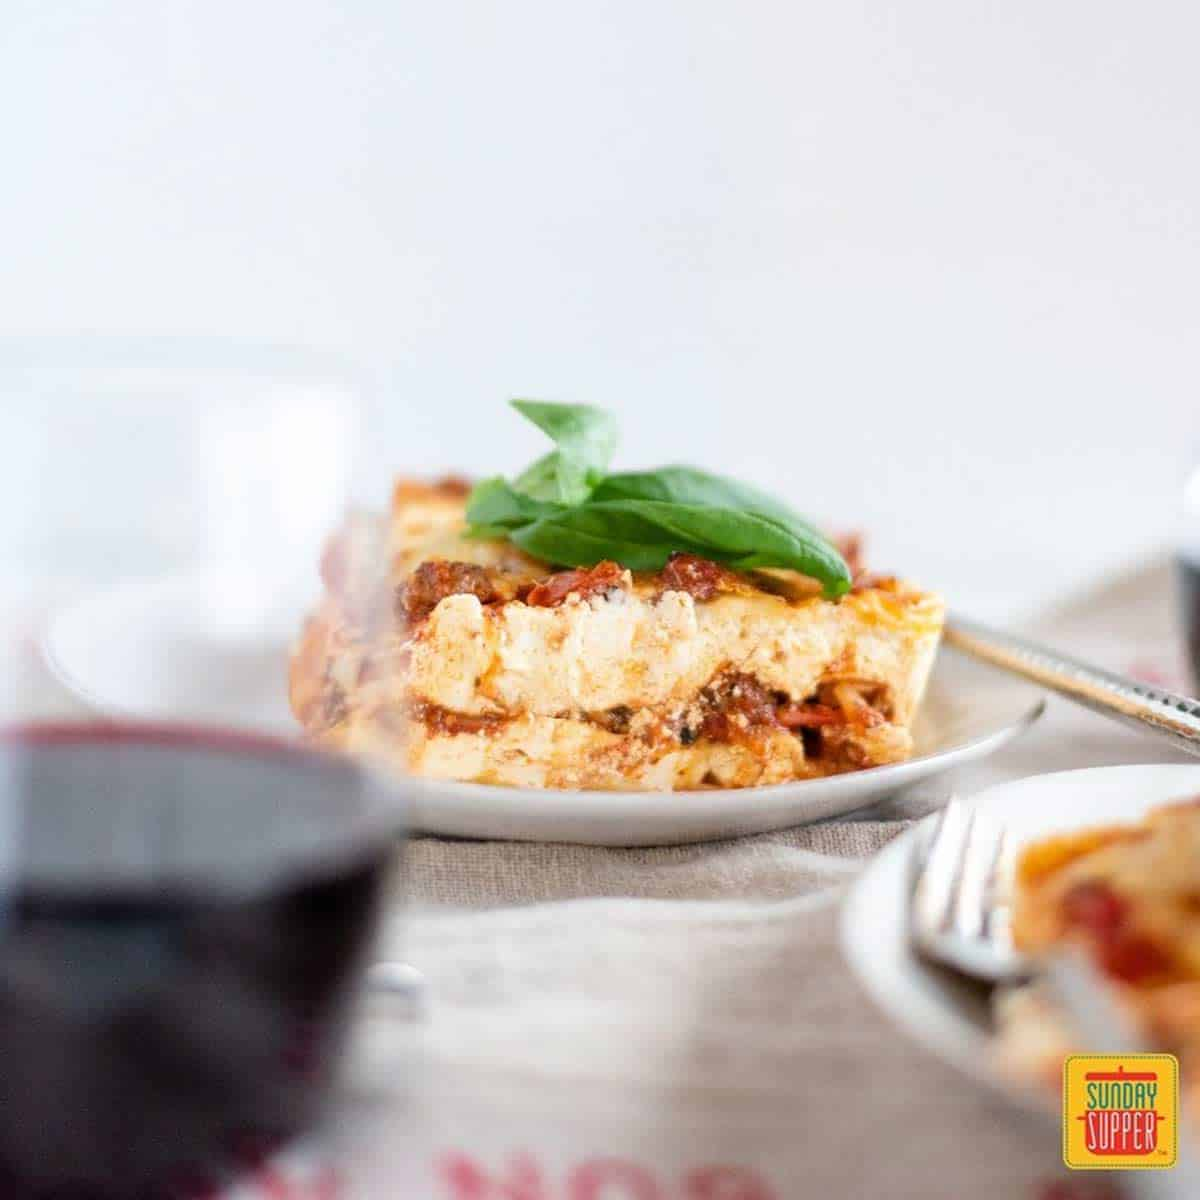 Lasagna for two on a plate with a glass of red wine